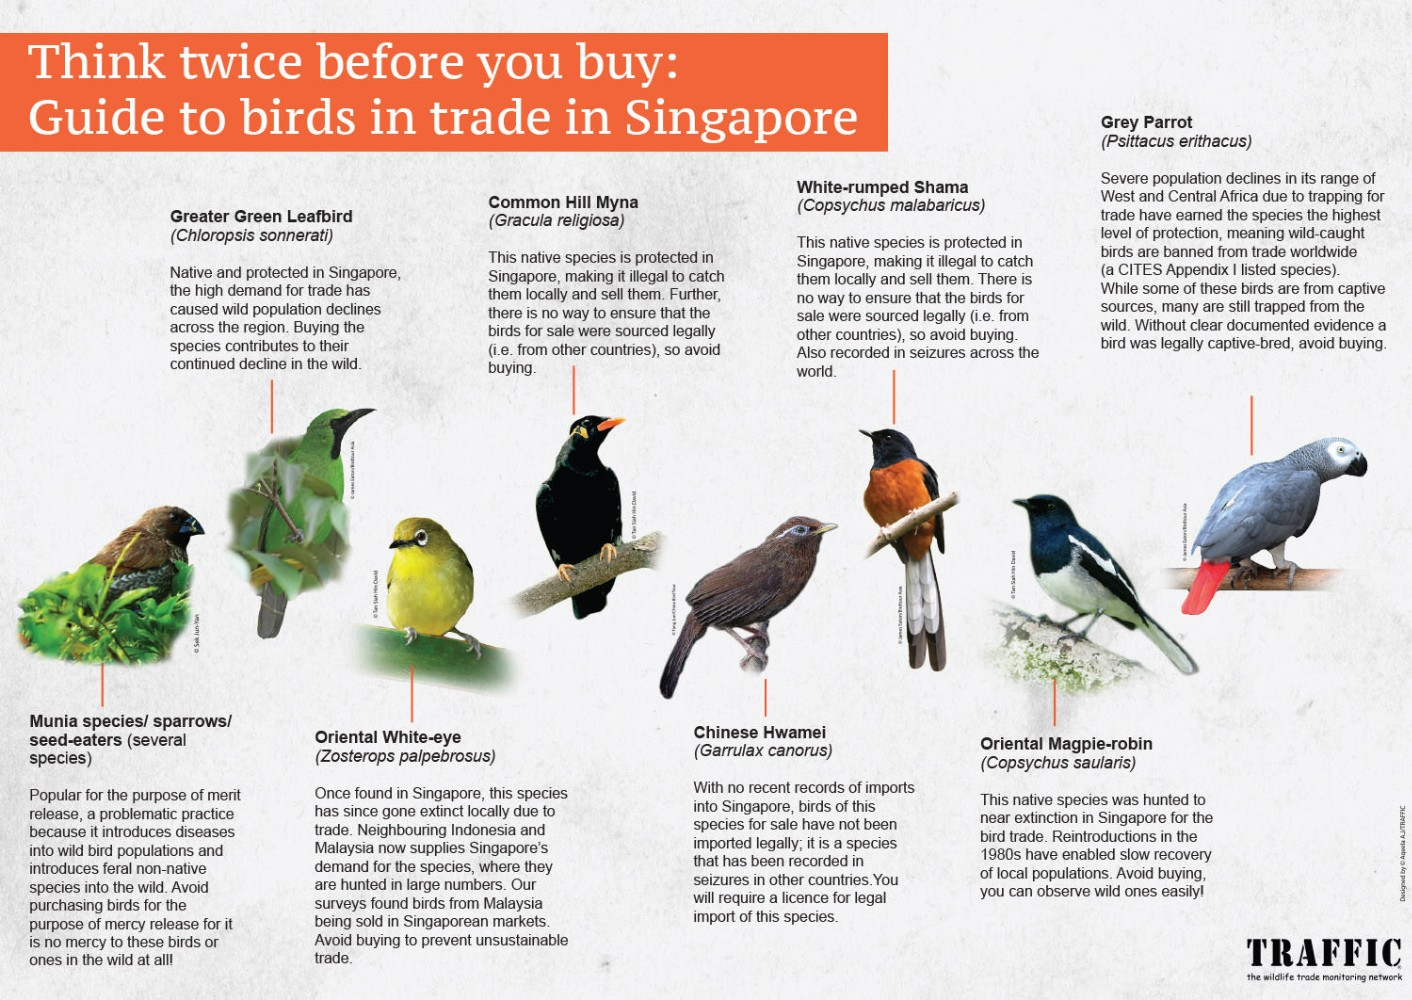 A poster aimed at potential buyers of birds in Singapore, advising which species are best avoided